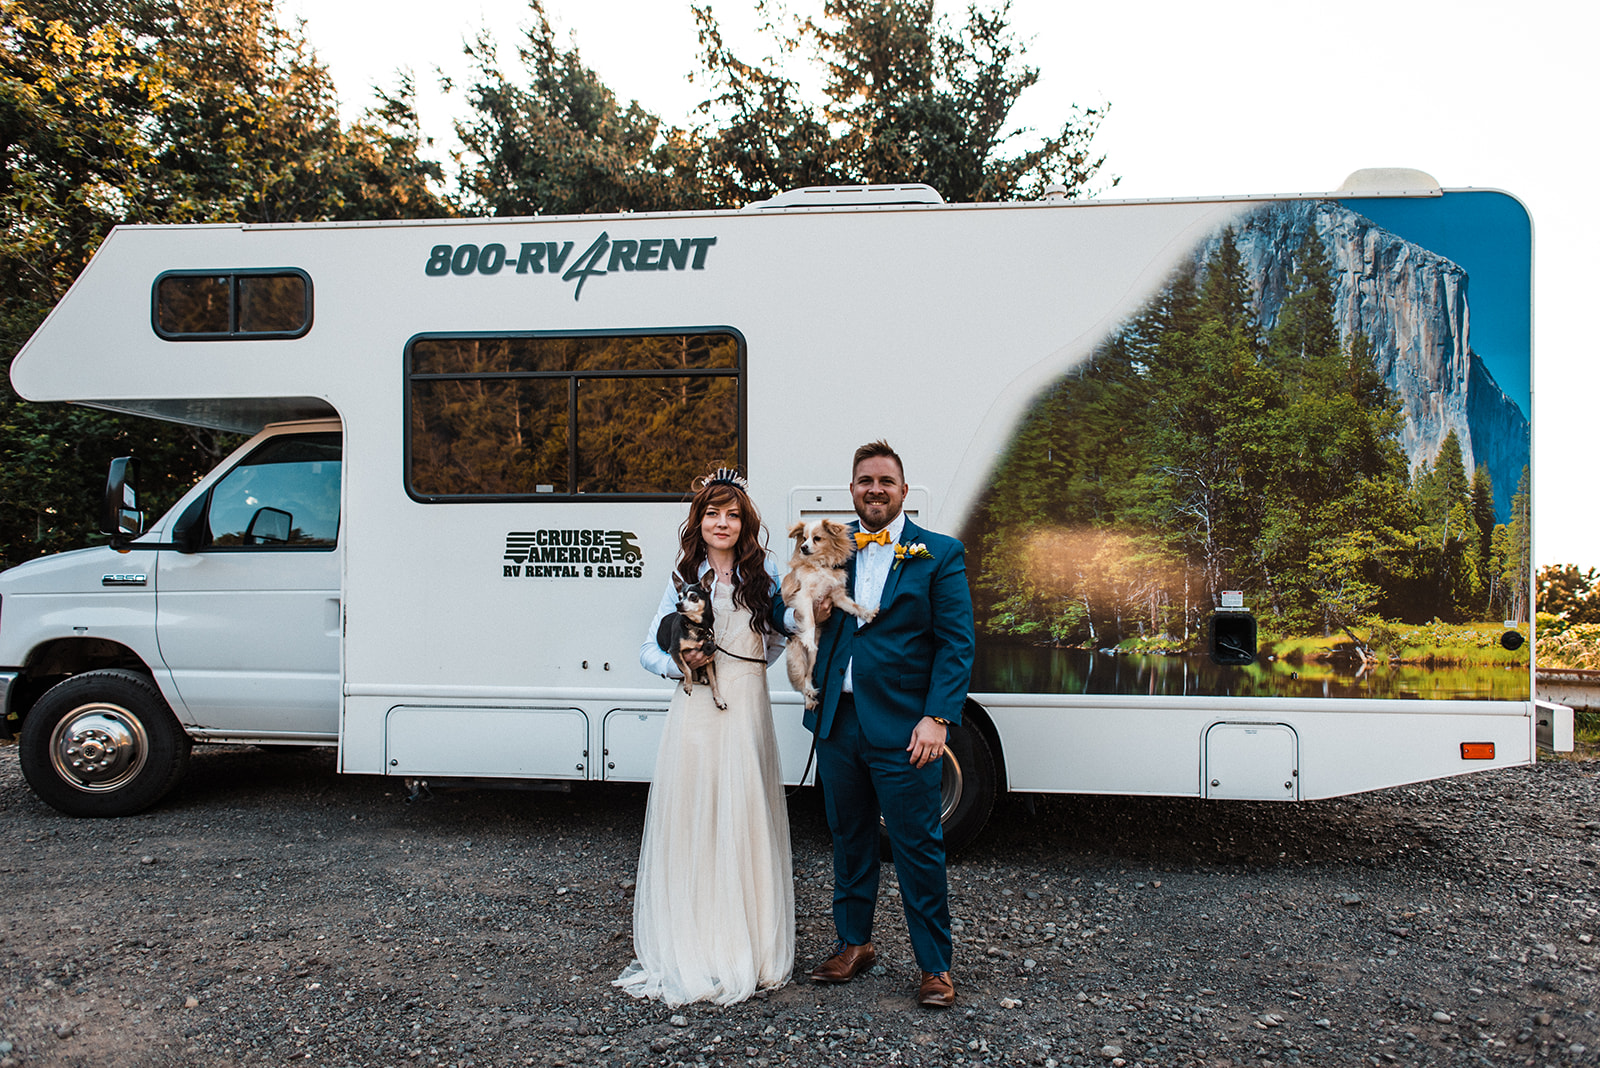 Adventure Elopement couple with RV rental. Image: The Foxes Photography